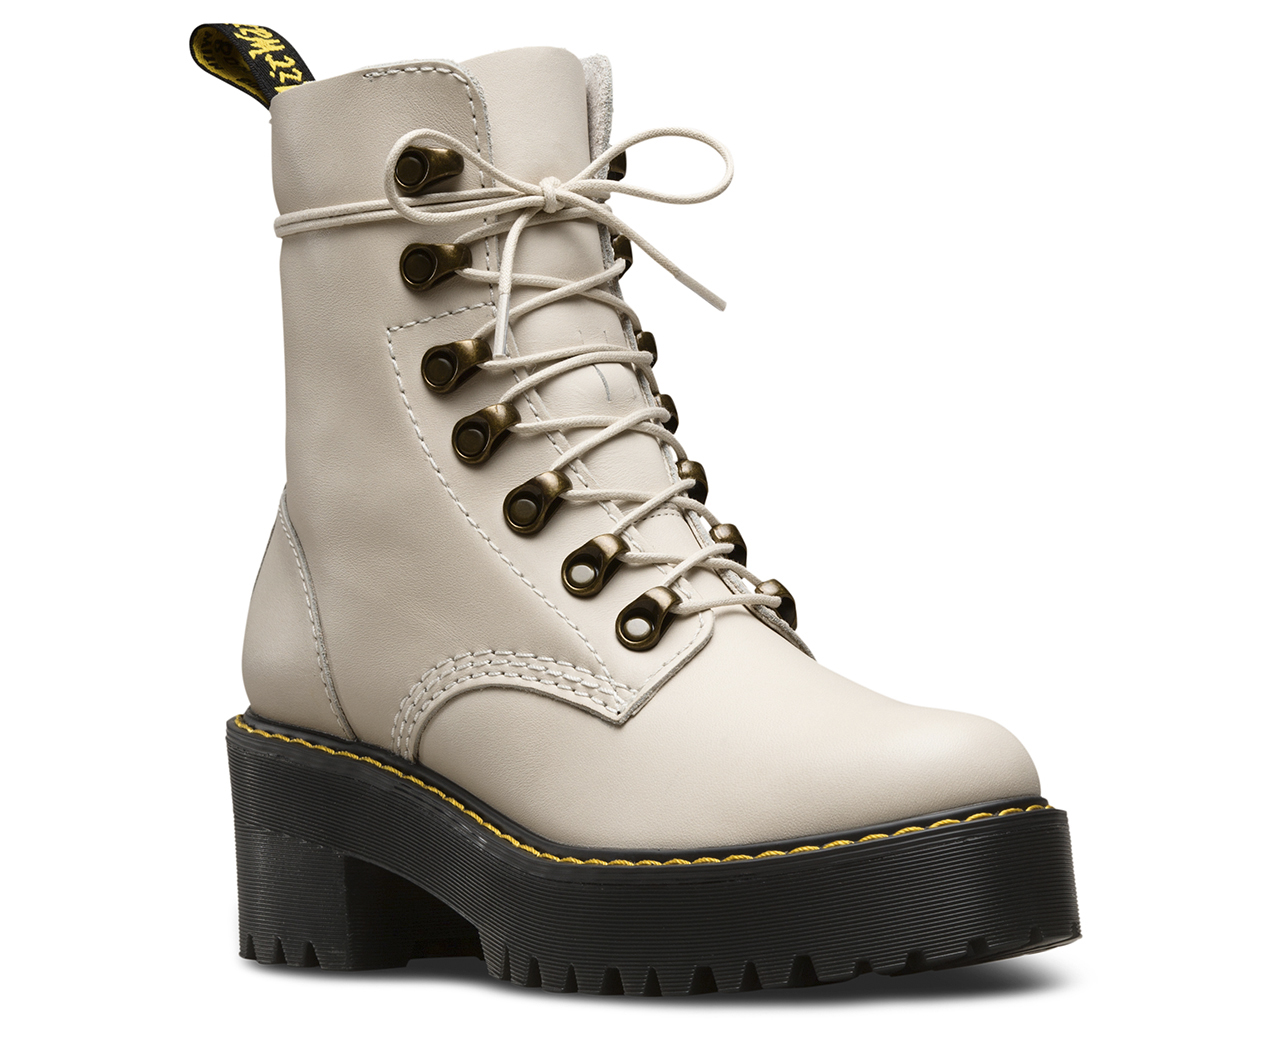 1df991f5f LEONA TEMPERLEY | Women's Boots | Dr. Martens Official